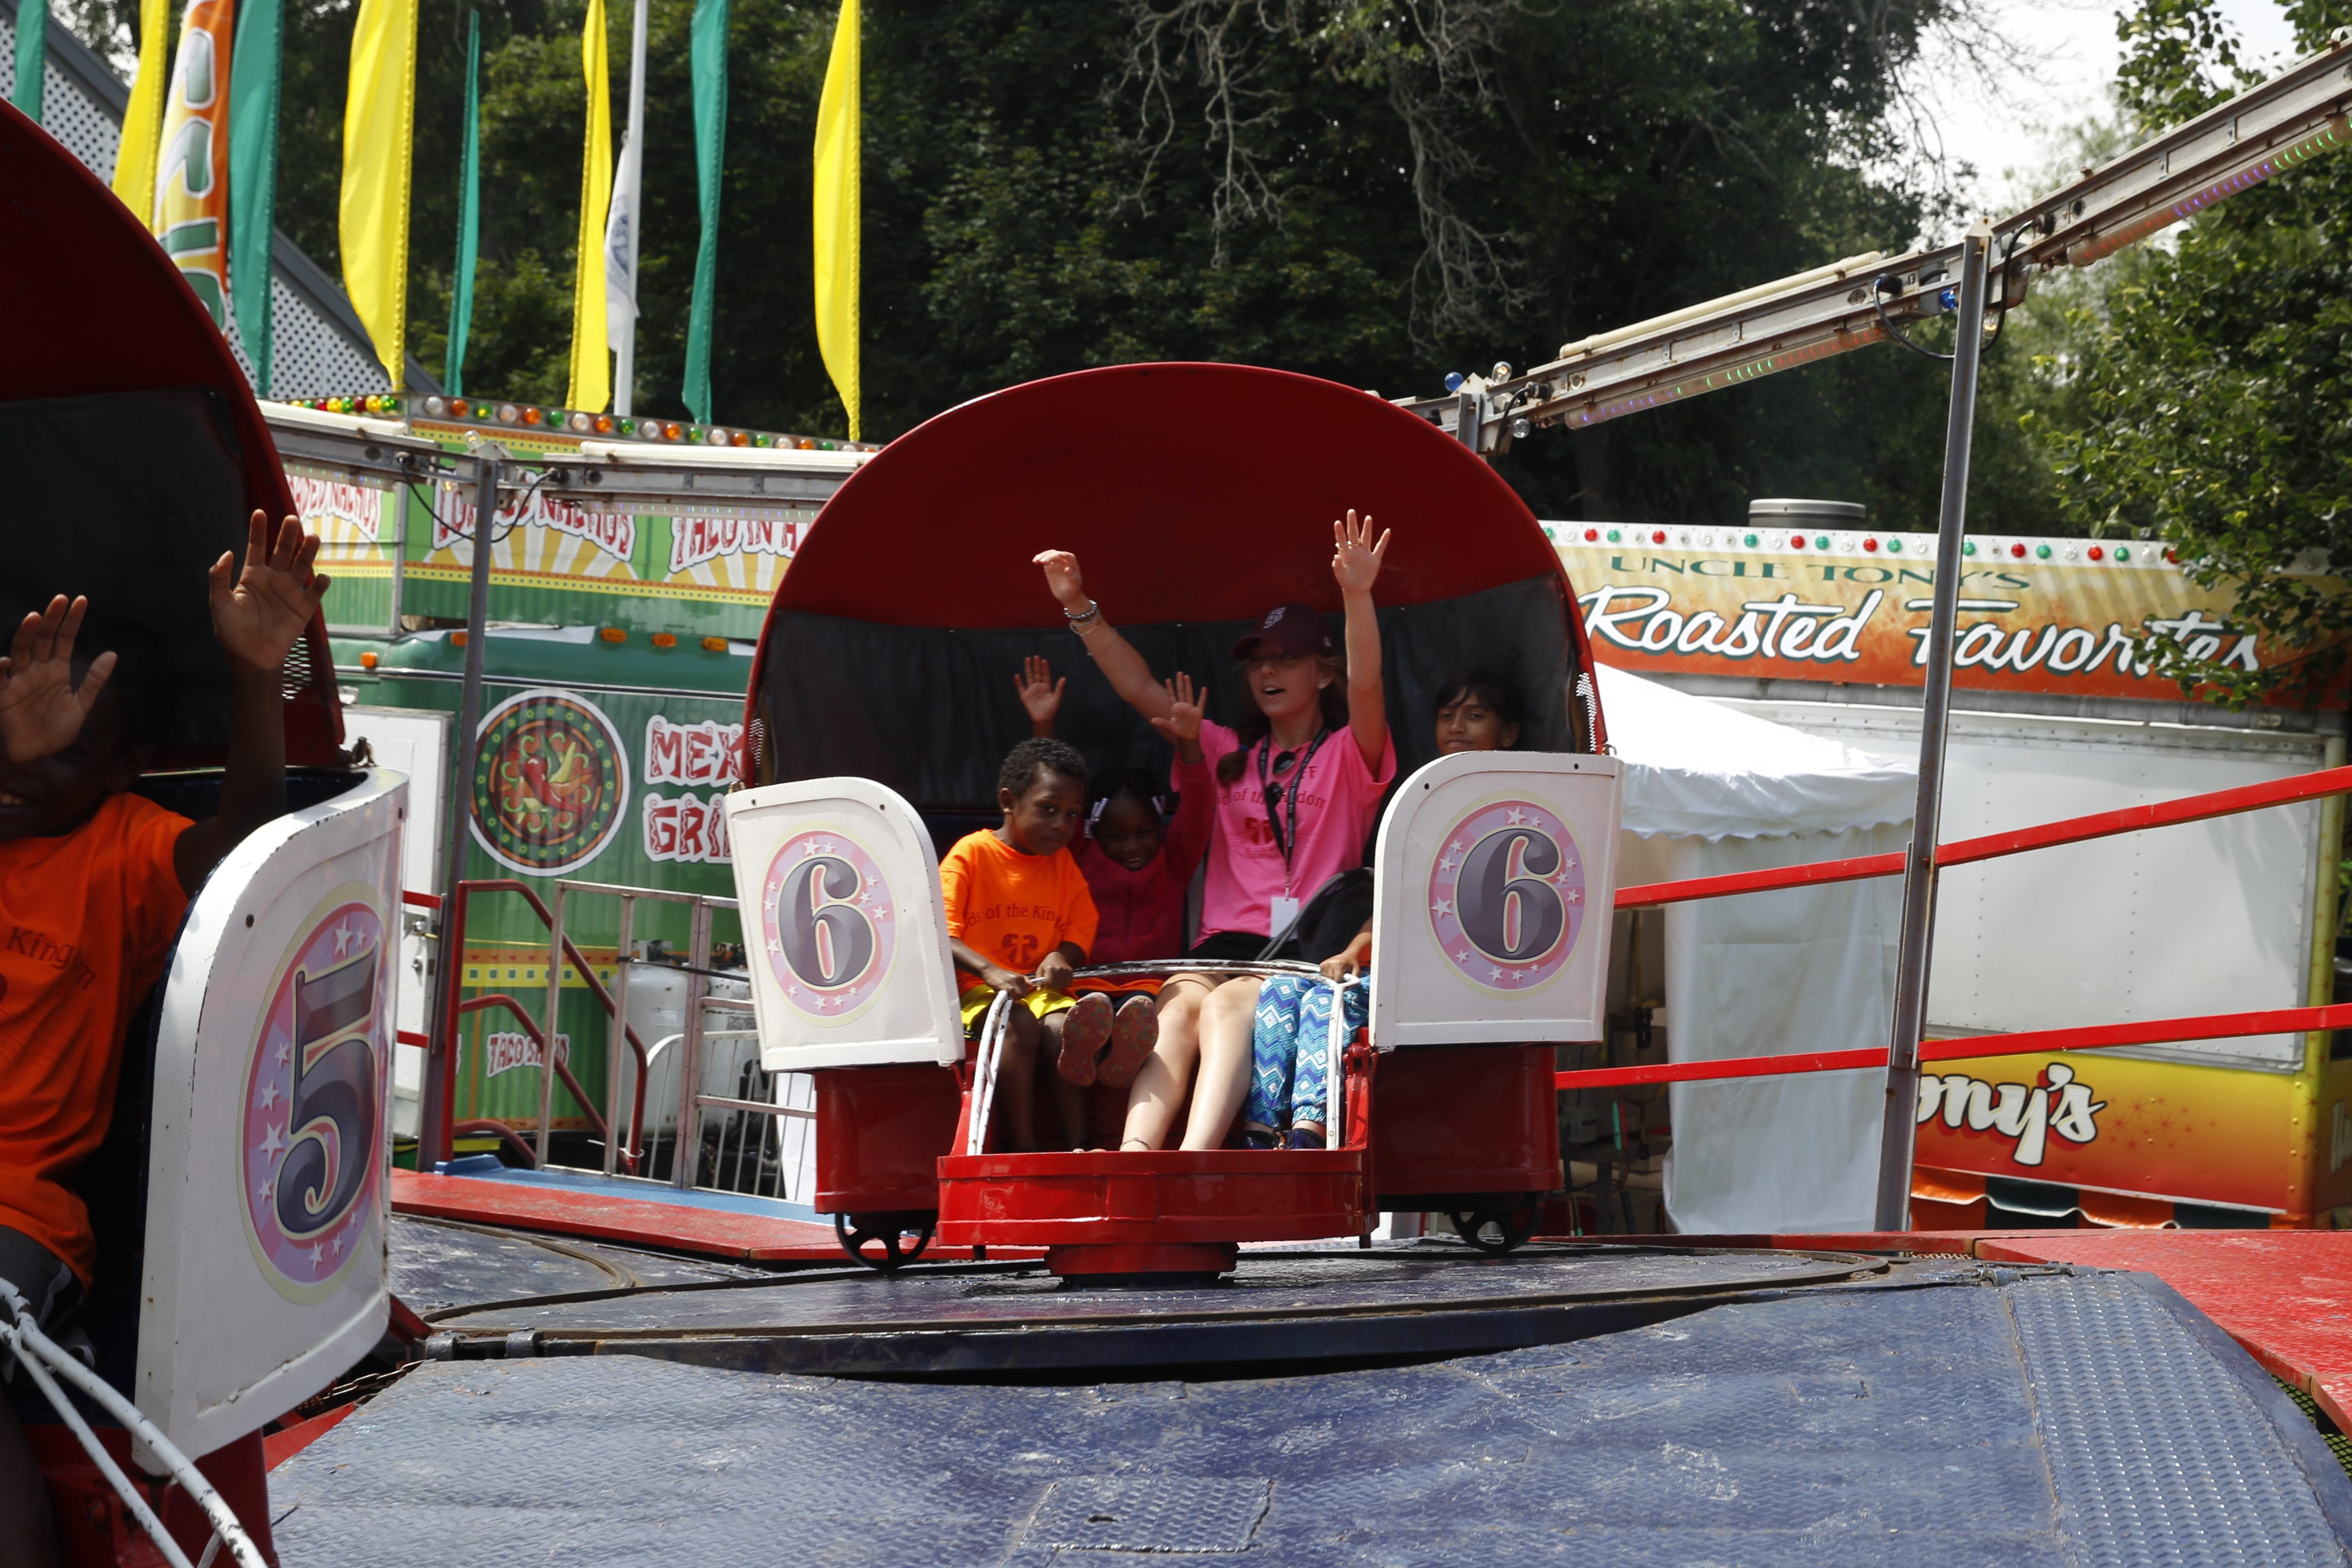 Take the kids on a ride at the annual Old Home Days celebration on Island Park in Williamsville. It's one of the many family friendly events held locally throughout the summer. (John Hickey/Buffalo News file photo)